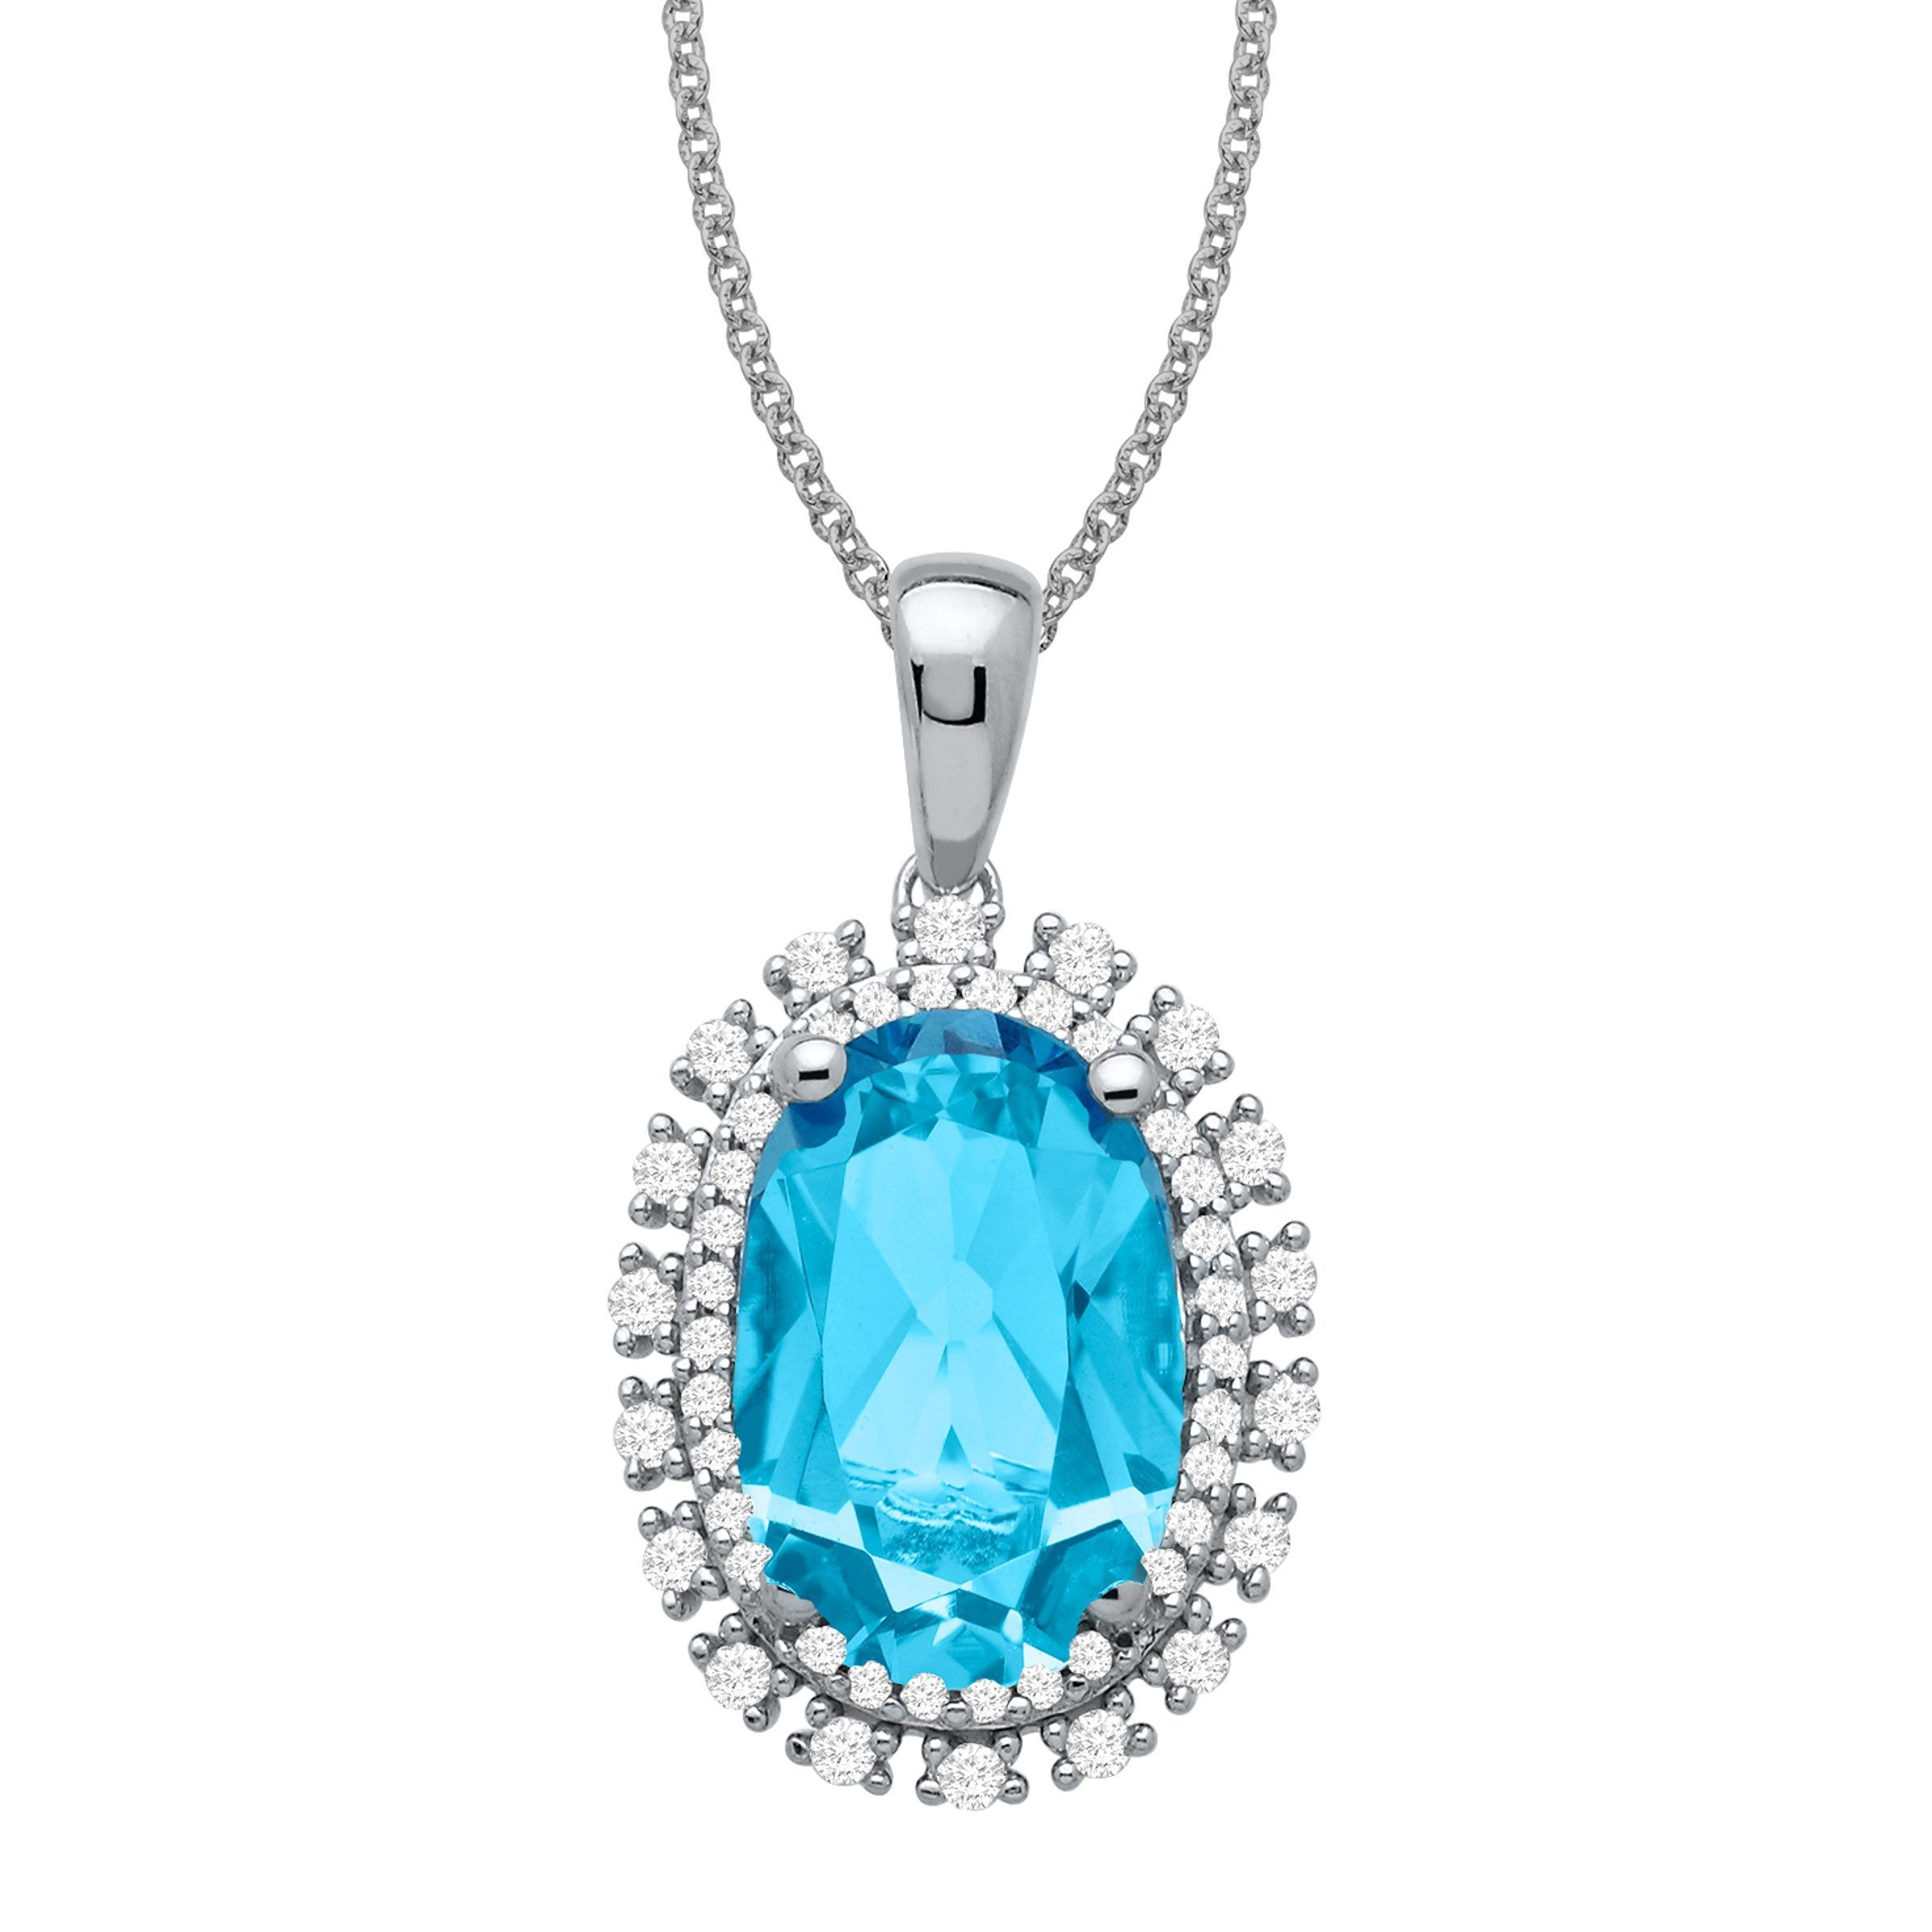 2.38 Ct Oval Checkerboard Swiss Blue Topaz 925 Sterling Silver Pendant